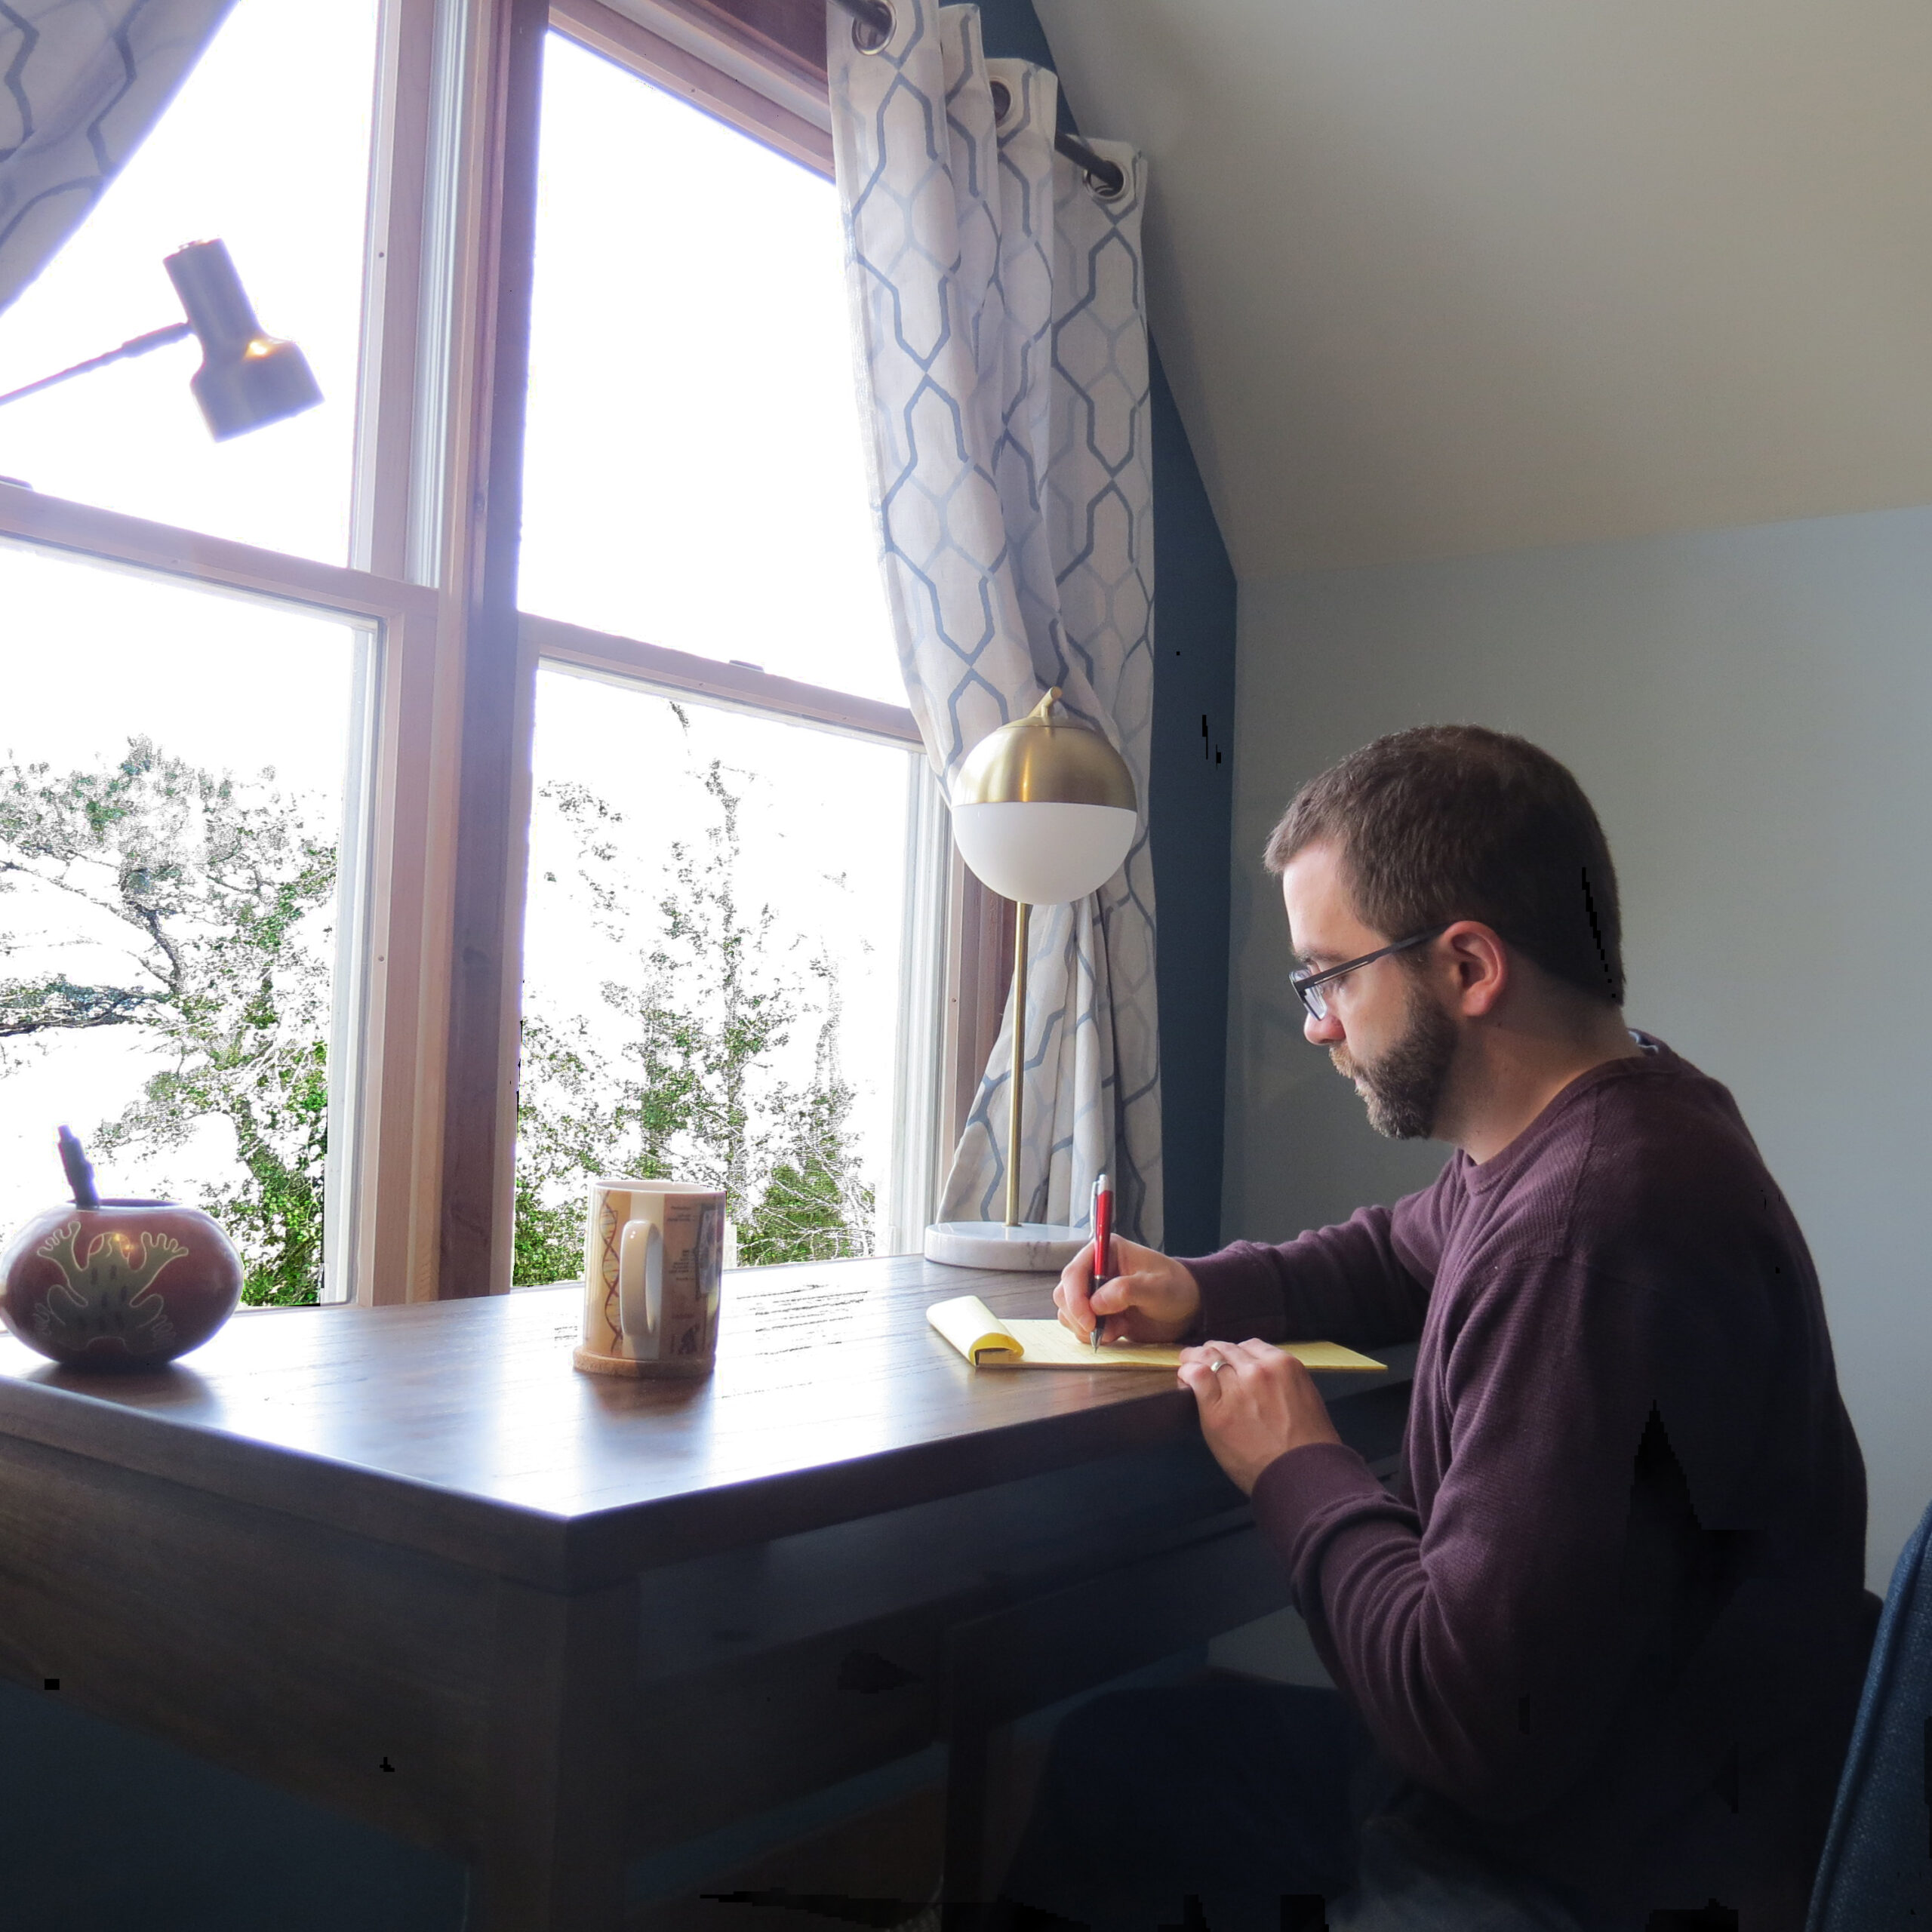 A man writes at a desk in front of a window